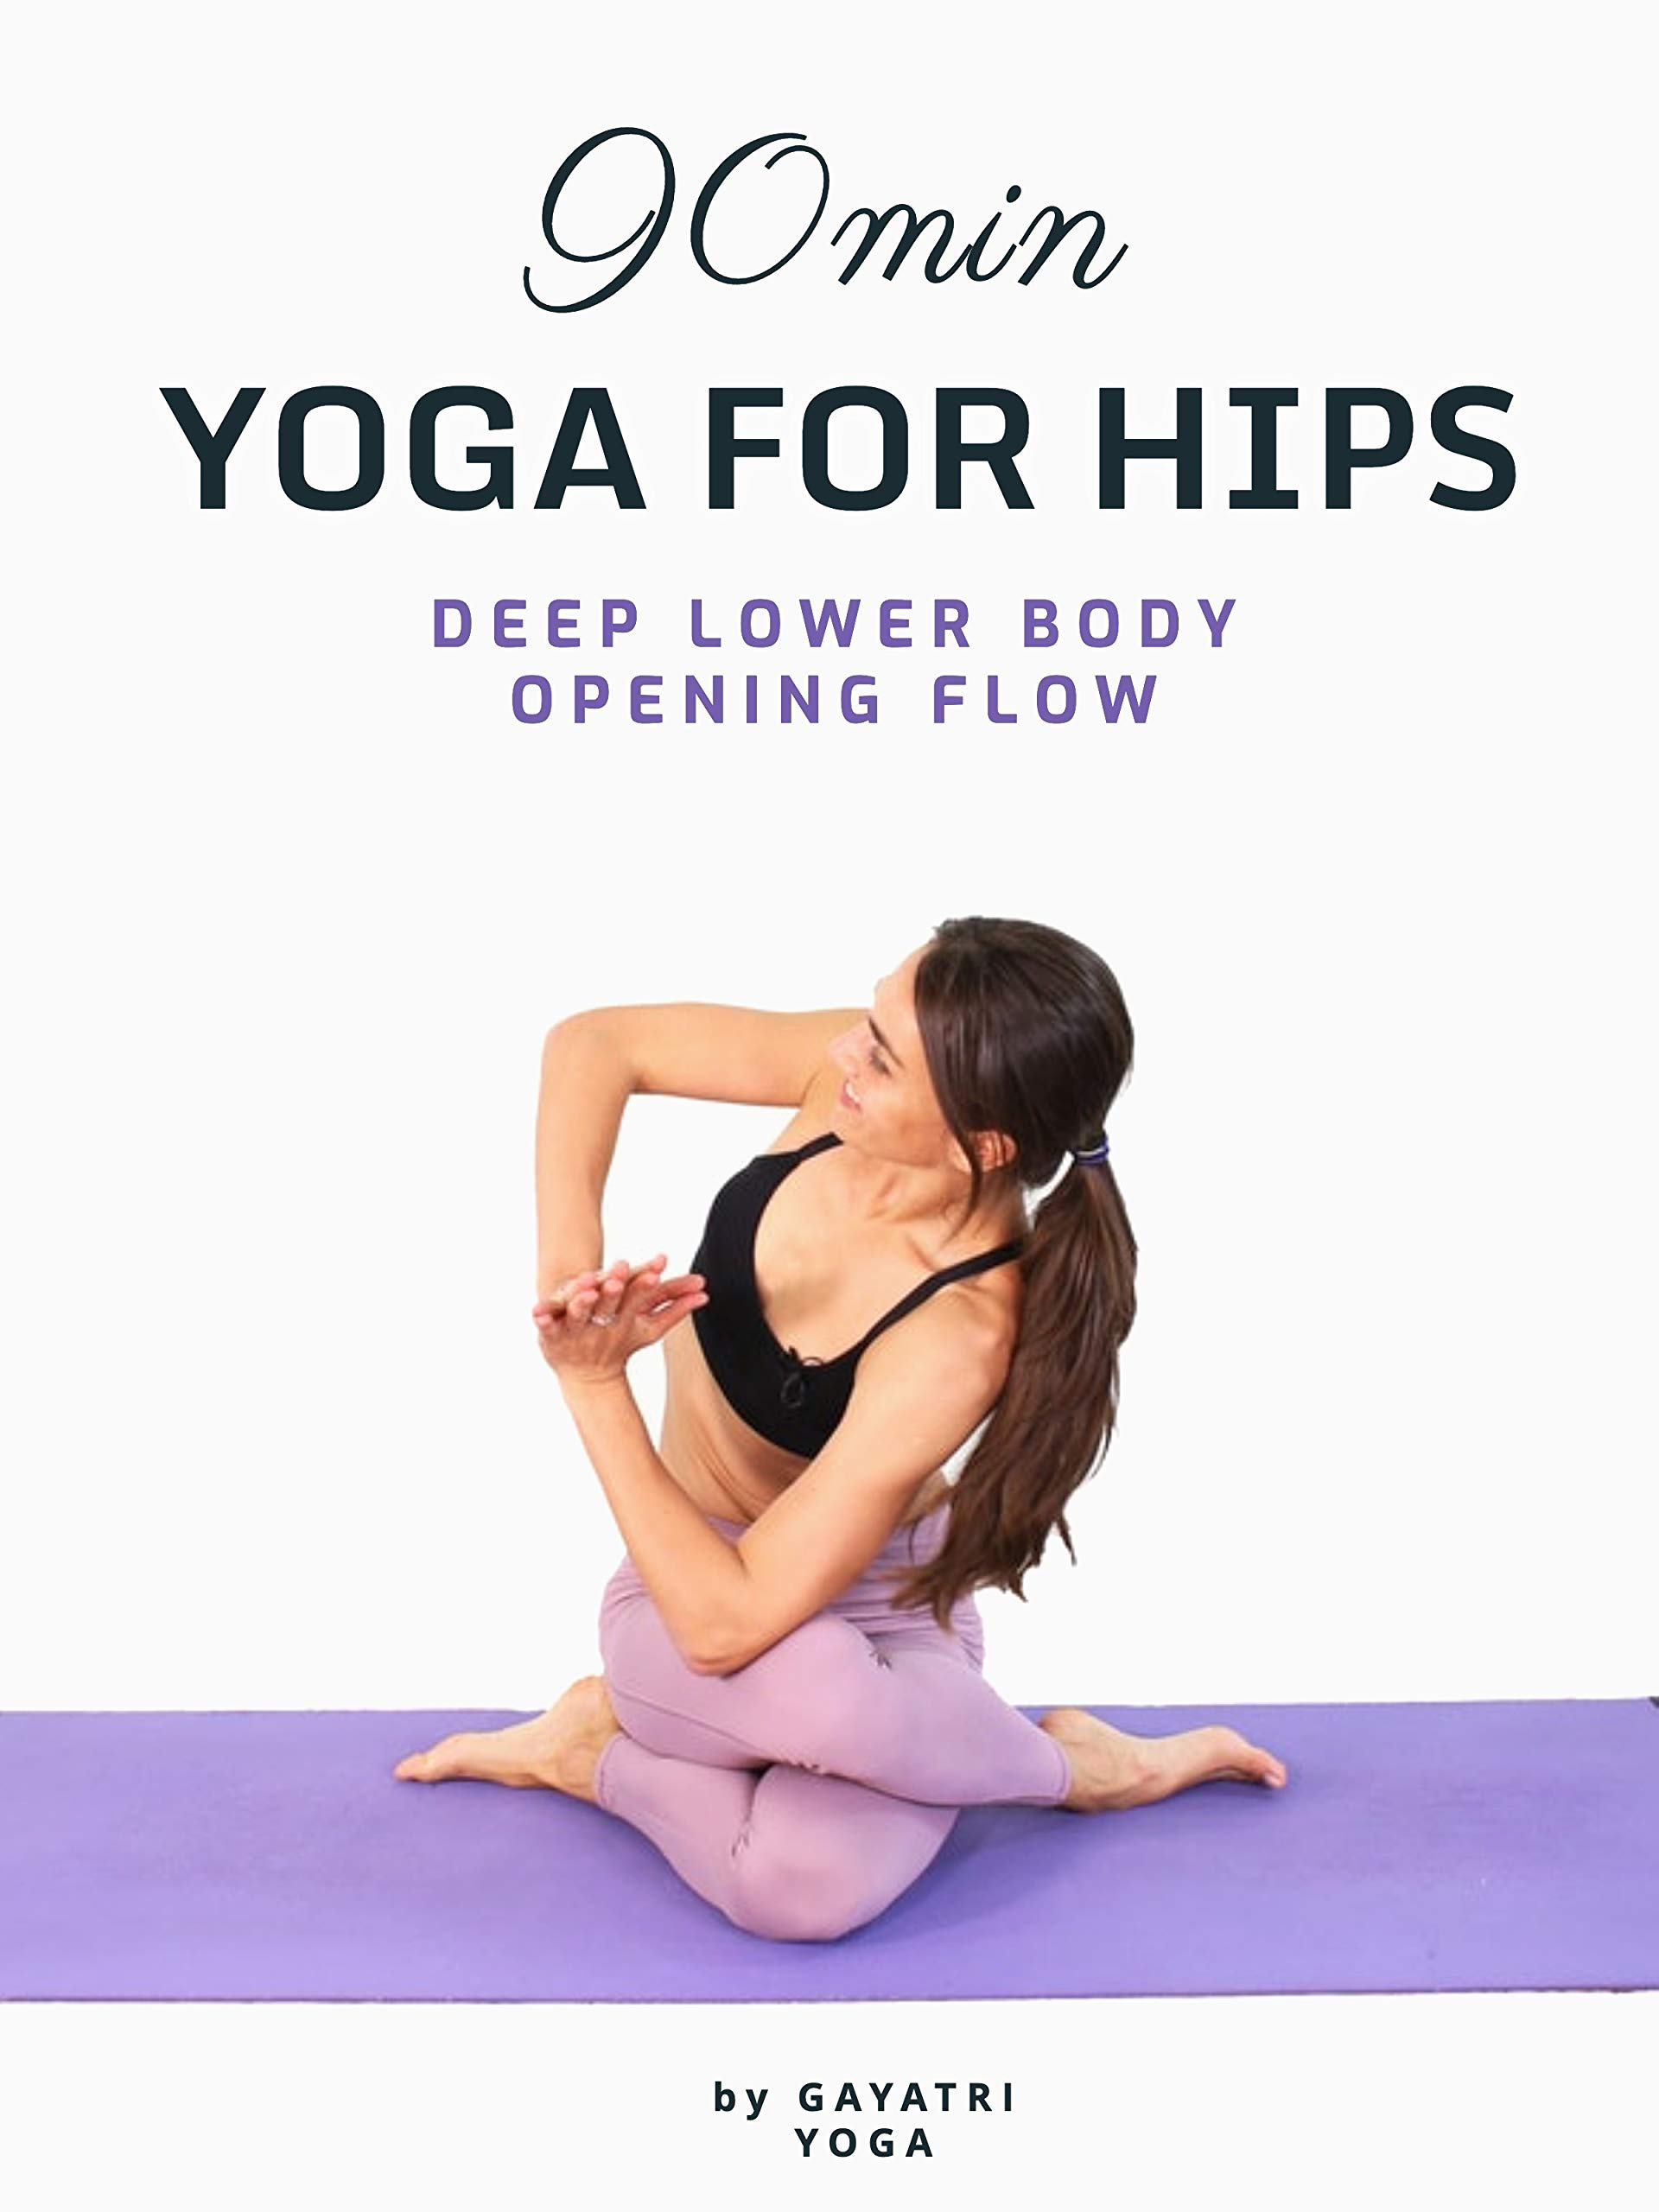 90 Min Yoga For Hips - Deep Lower Body Opening Flow - Gayatri Yoga